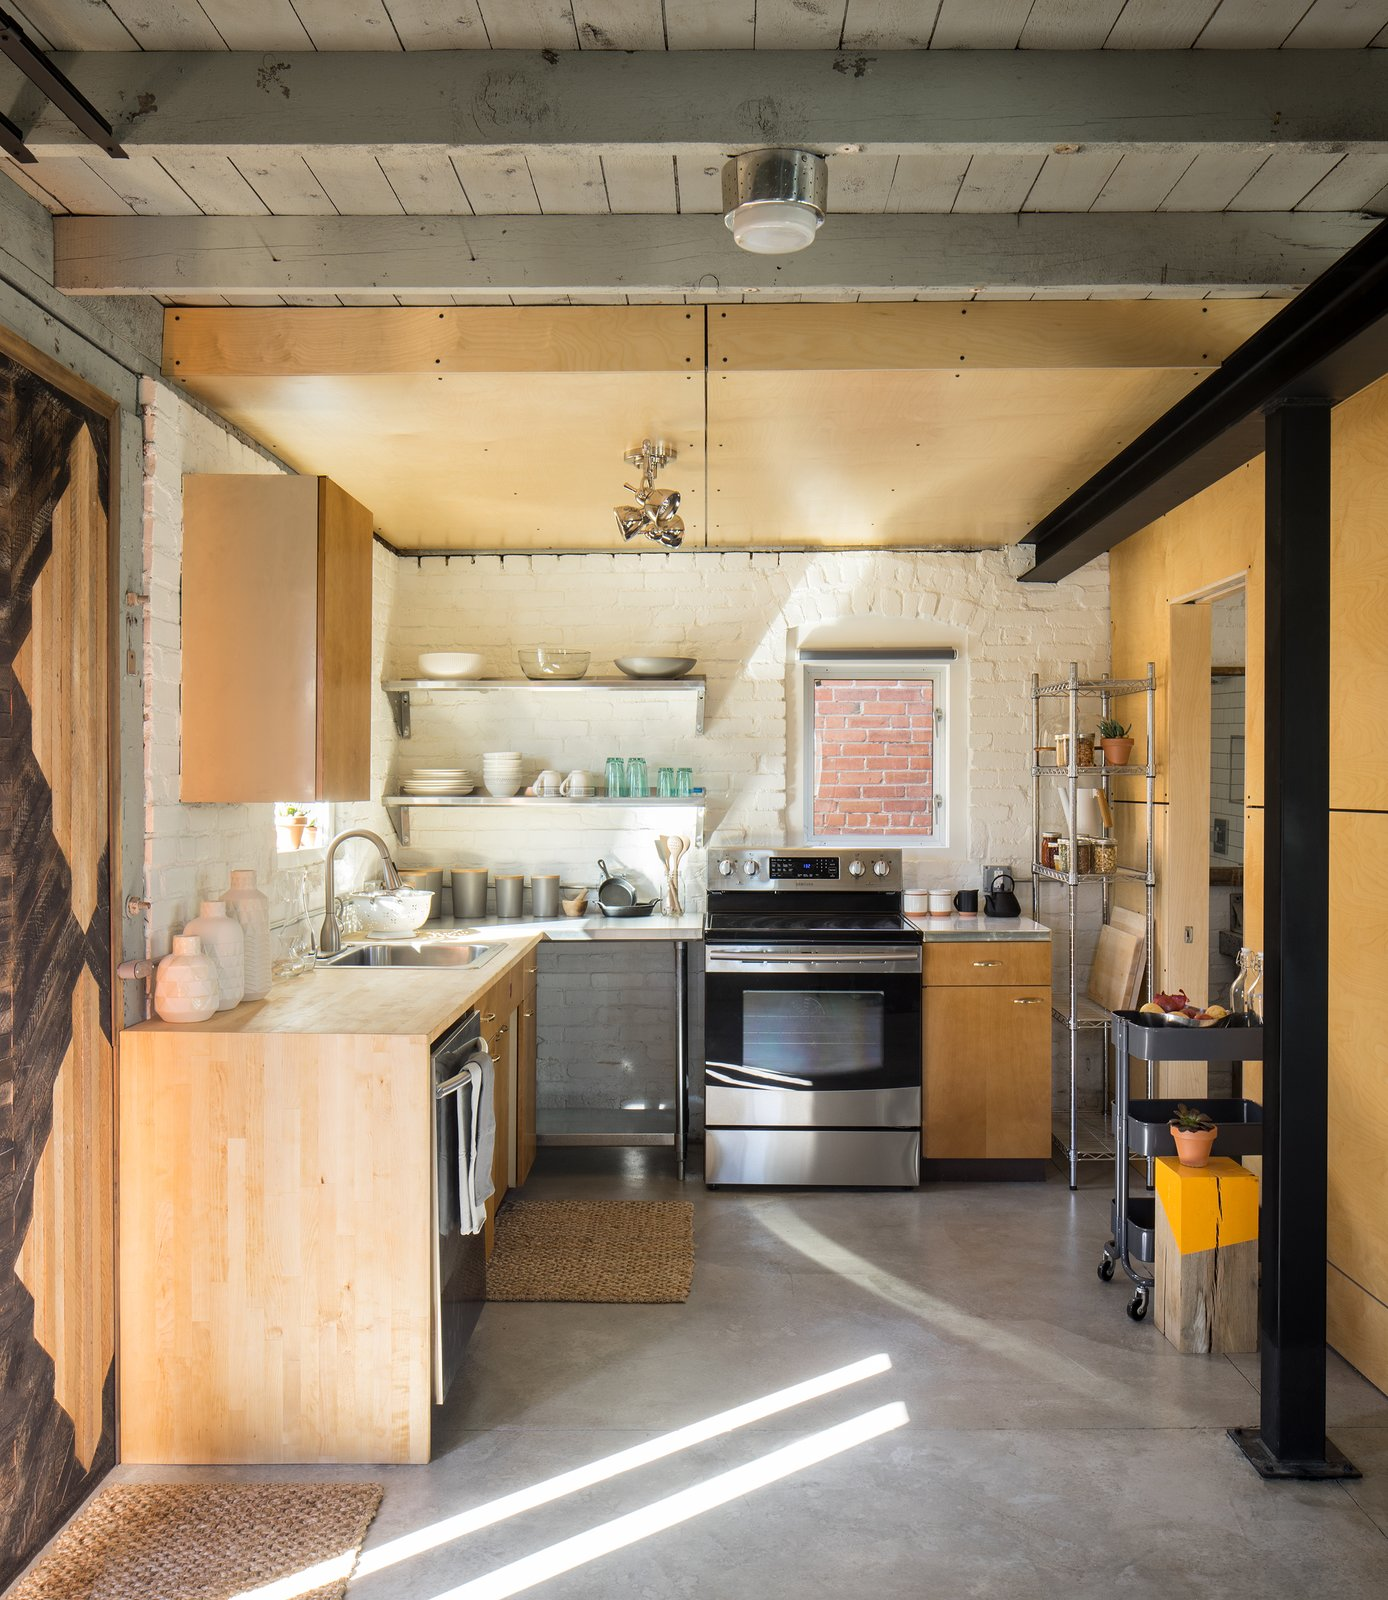 Kitchen, Wood, Metal, Concrete, Brick, Ceiling, Range, Dishwasher, and Drop In White paint brightens the modest kitchen of this Denver home.   Kitchen Concrete Metal Photos from Blacksmith Shop